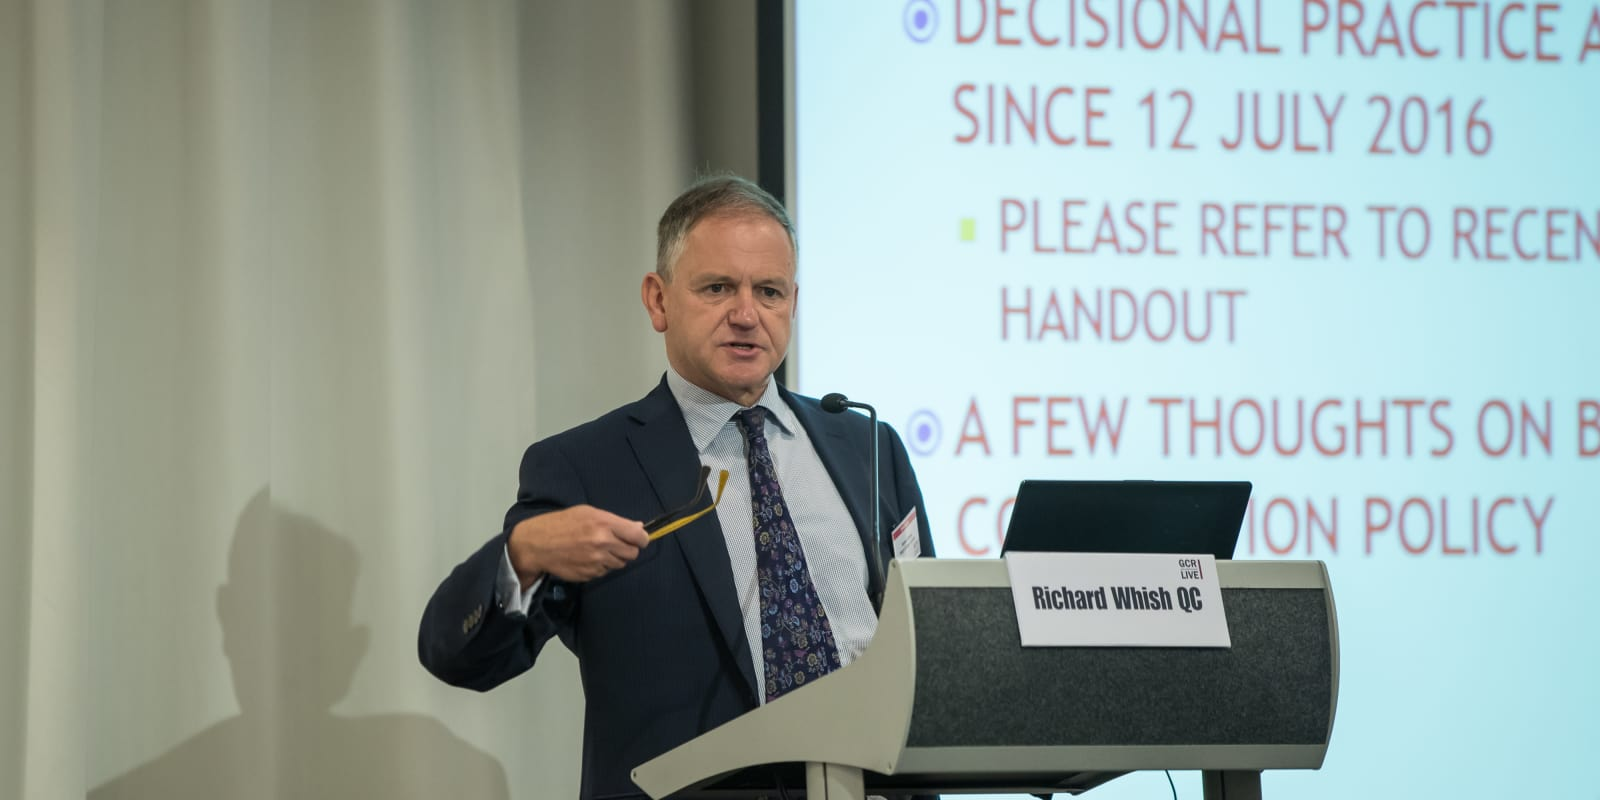 Whish urges restraint on algorithmic collusion